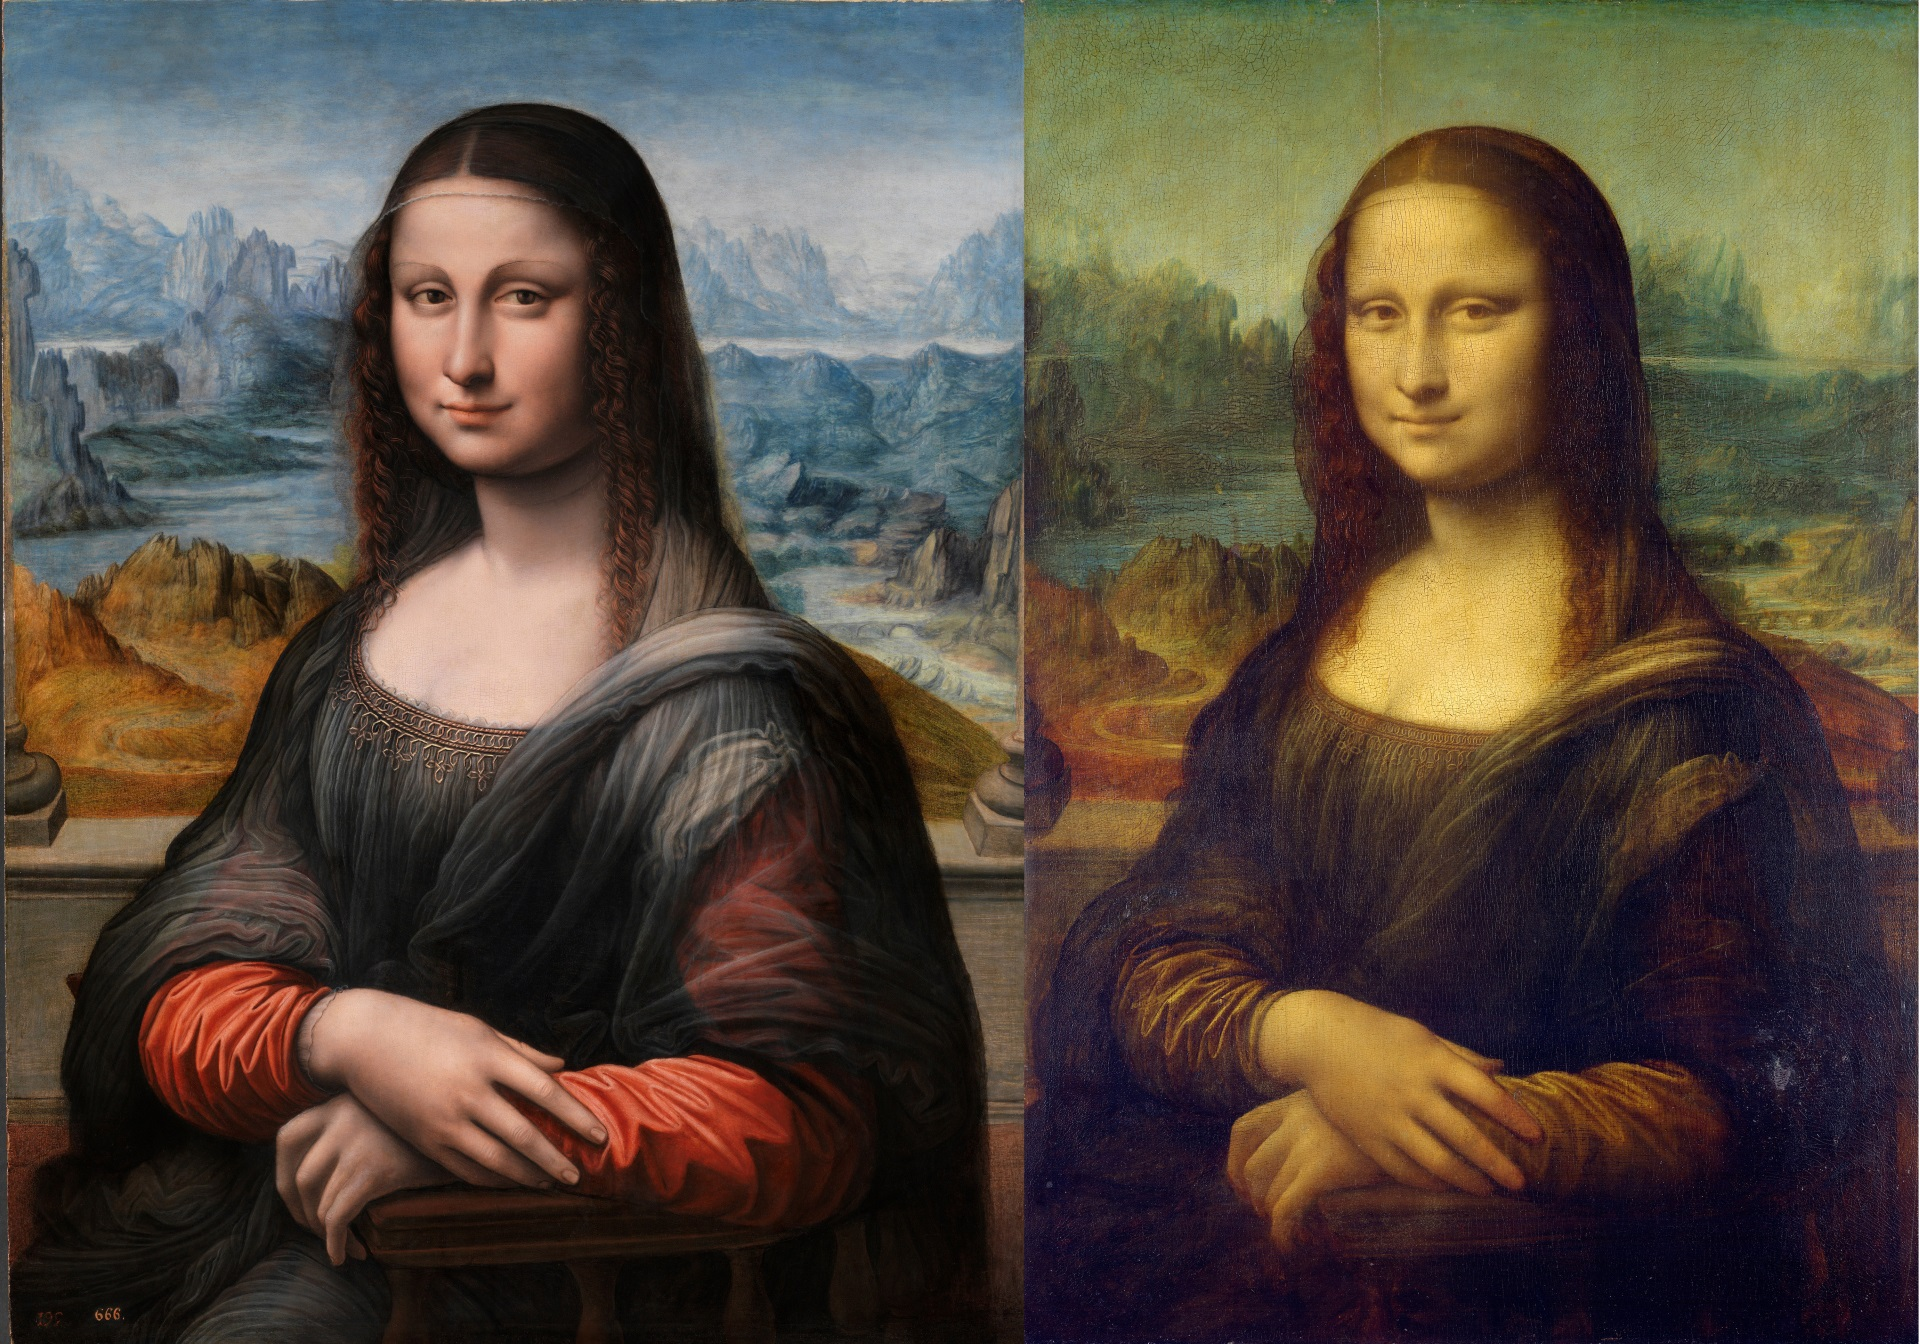 Mona Lisa side-by-side